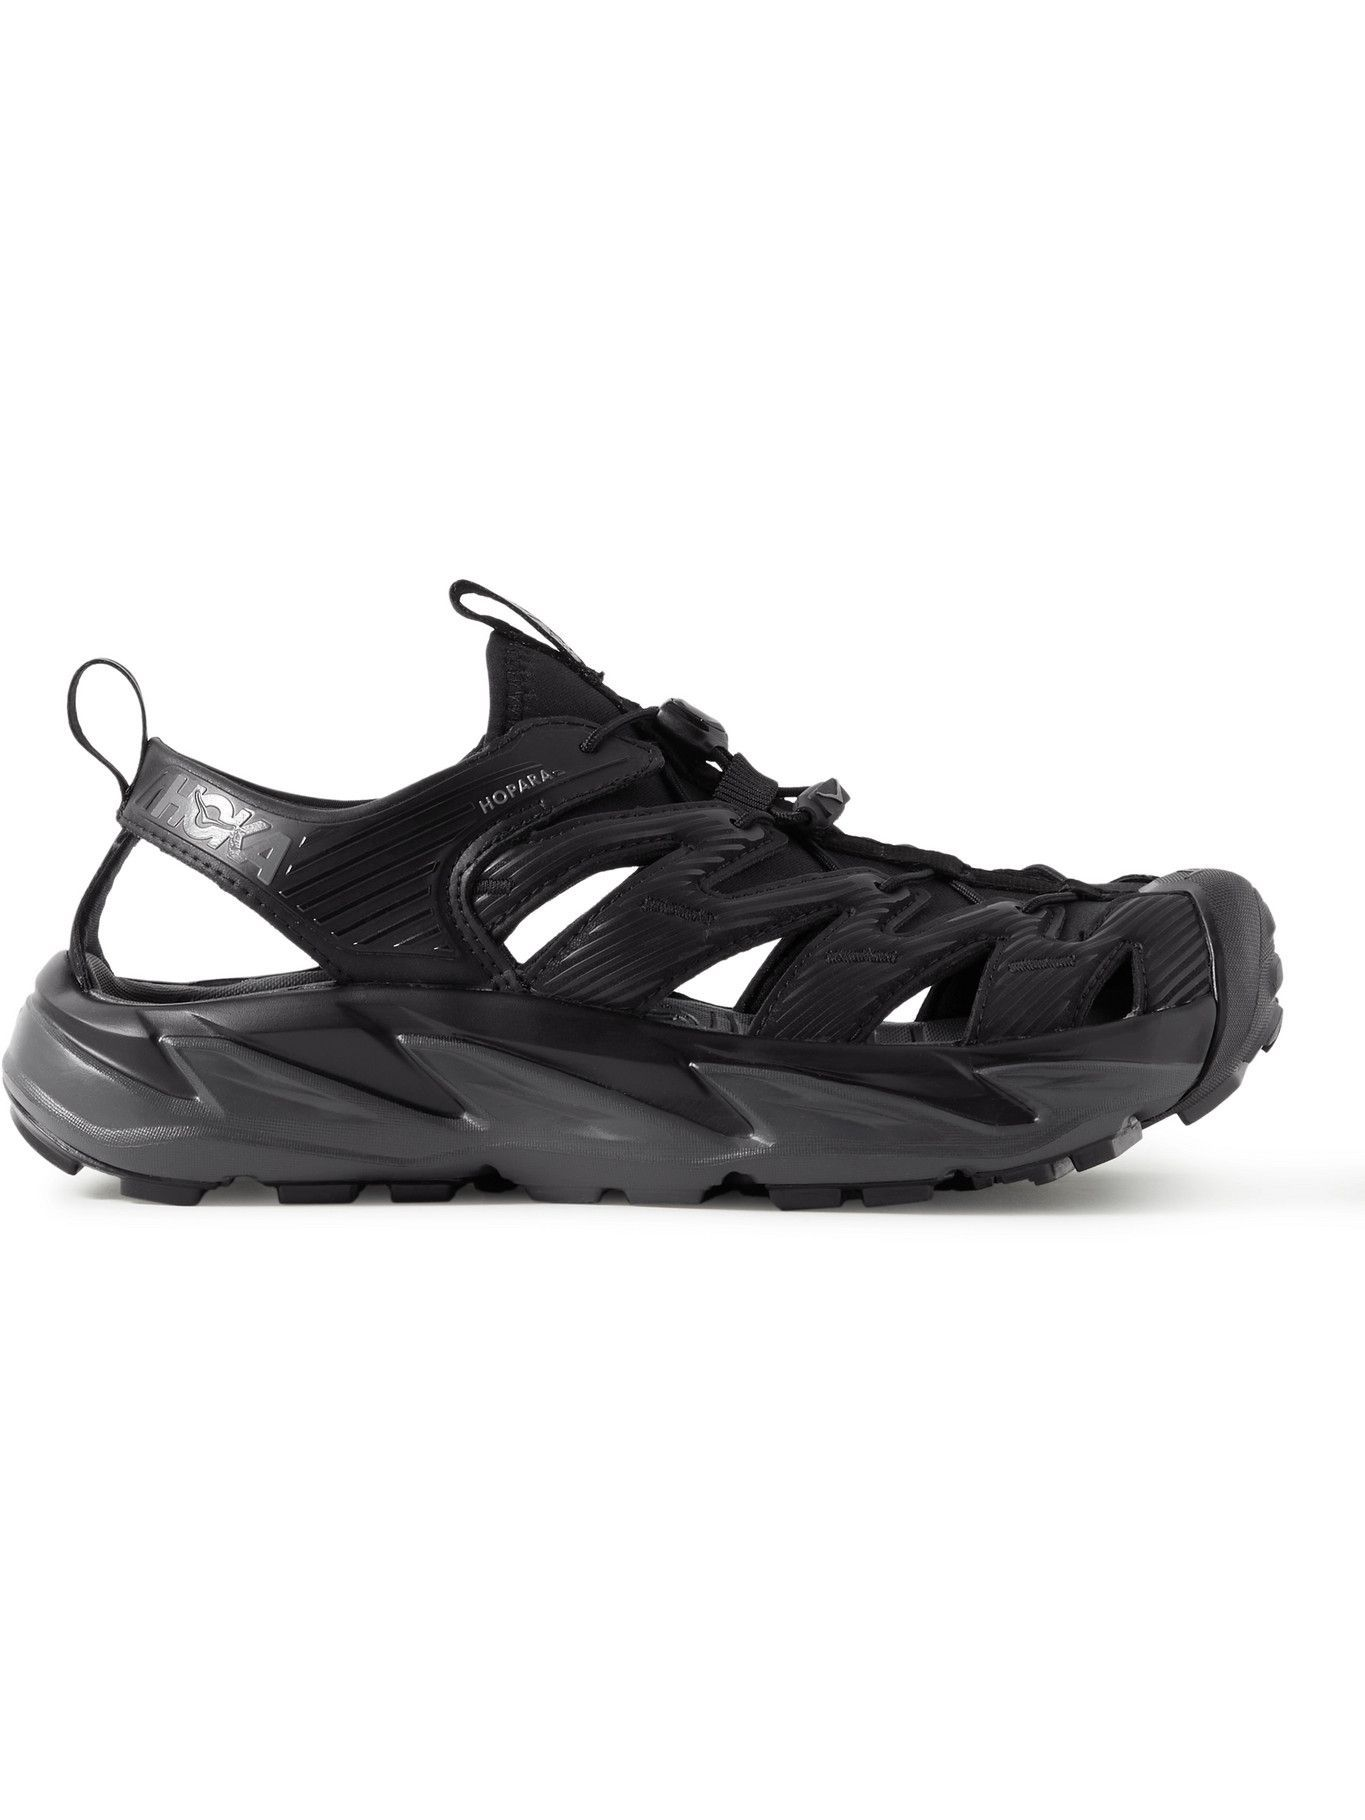 Photo: Hoka One One - Hopara Rubber-Trimmed Faux Leather and Neoprene Hiking Shoes - Black